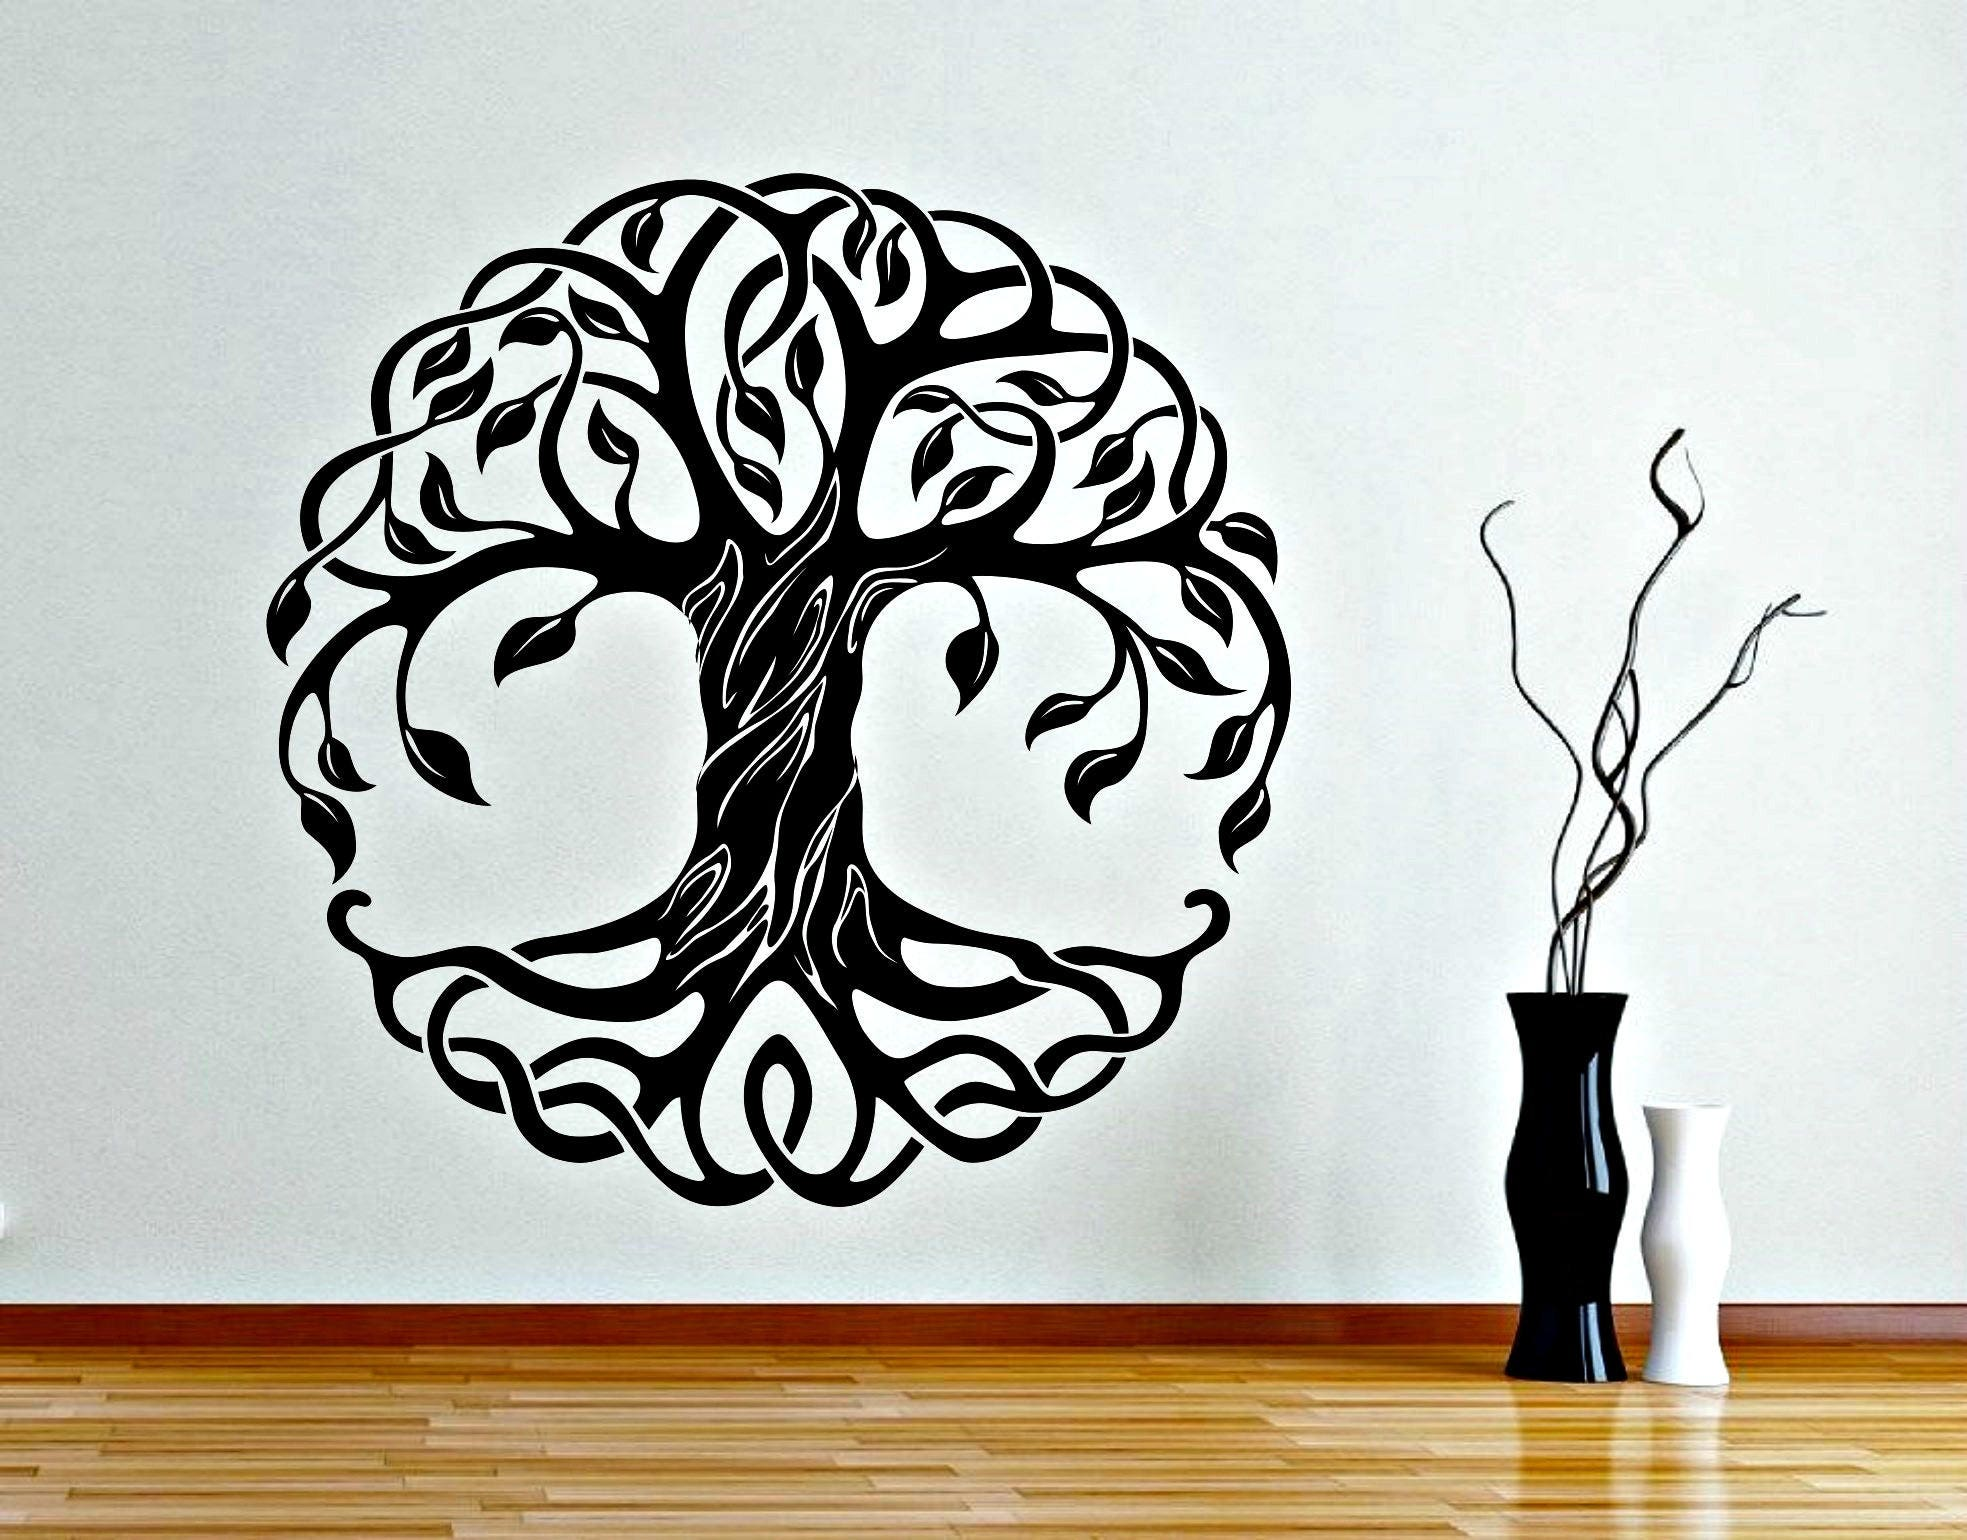 Merveilleux Description. This Stunning Mandala Tree Of Life Wall Decal ...